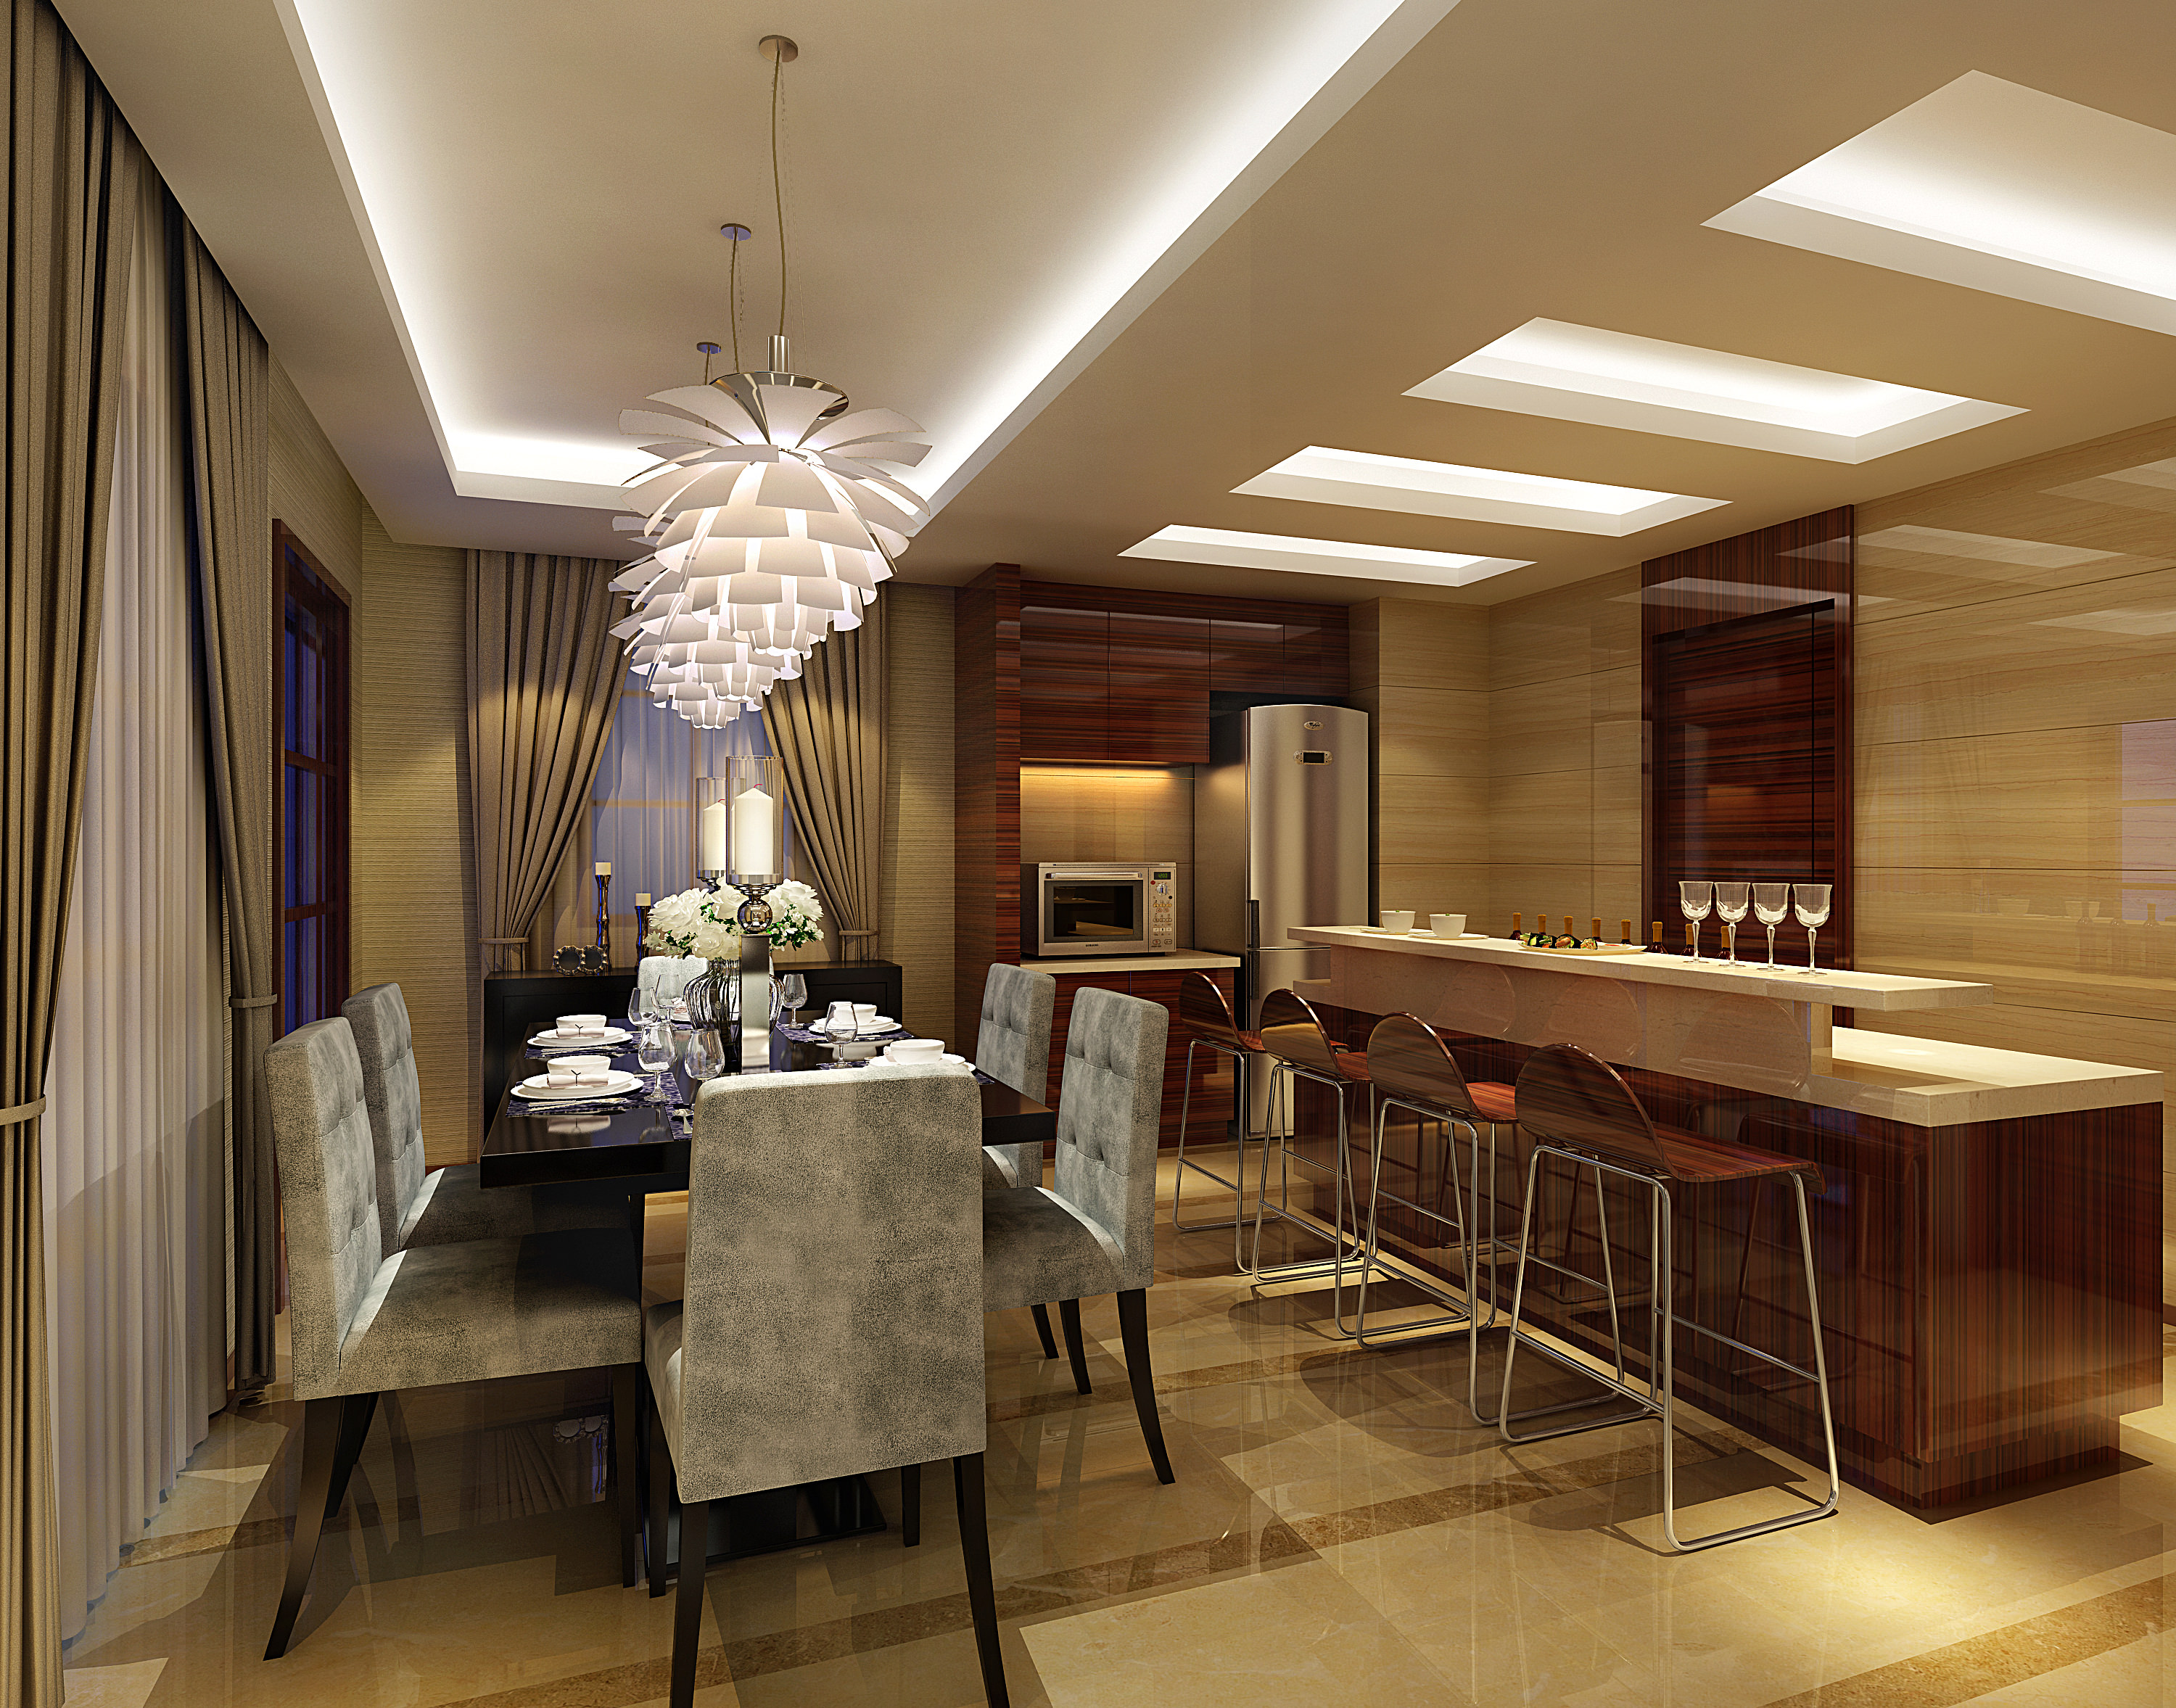 468 0 description comments 0 dining room with bar 3d model dining room ...